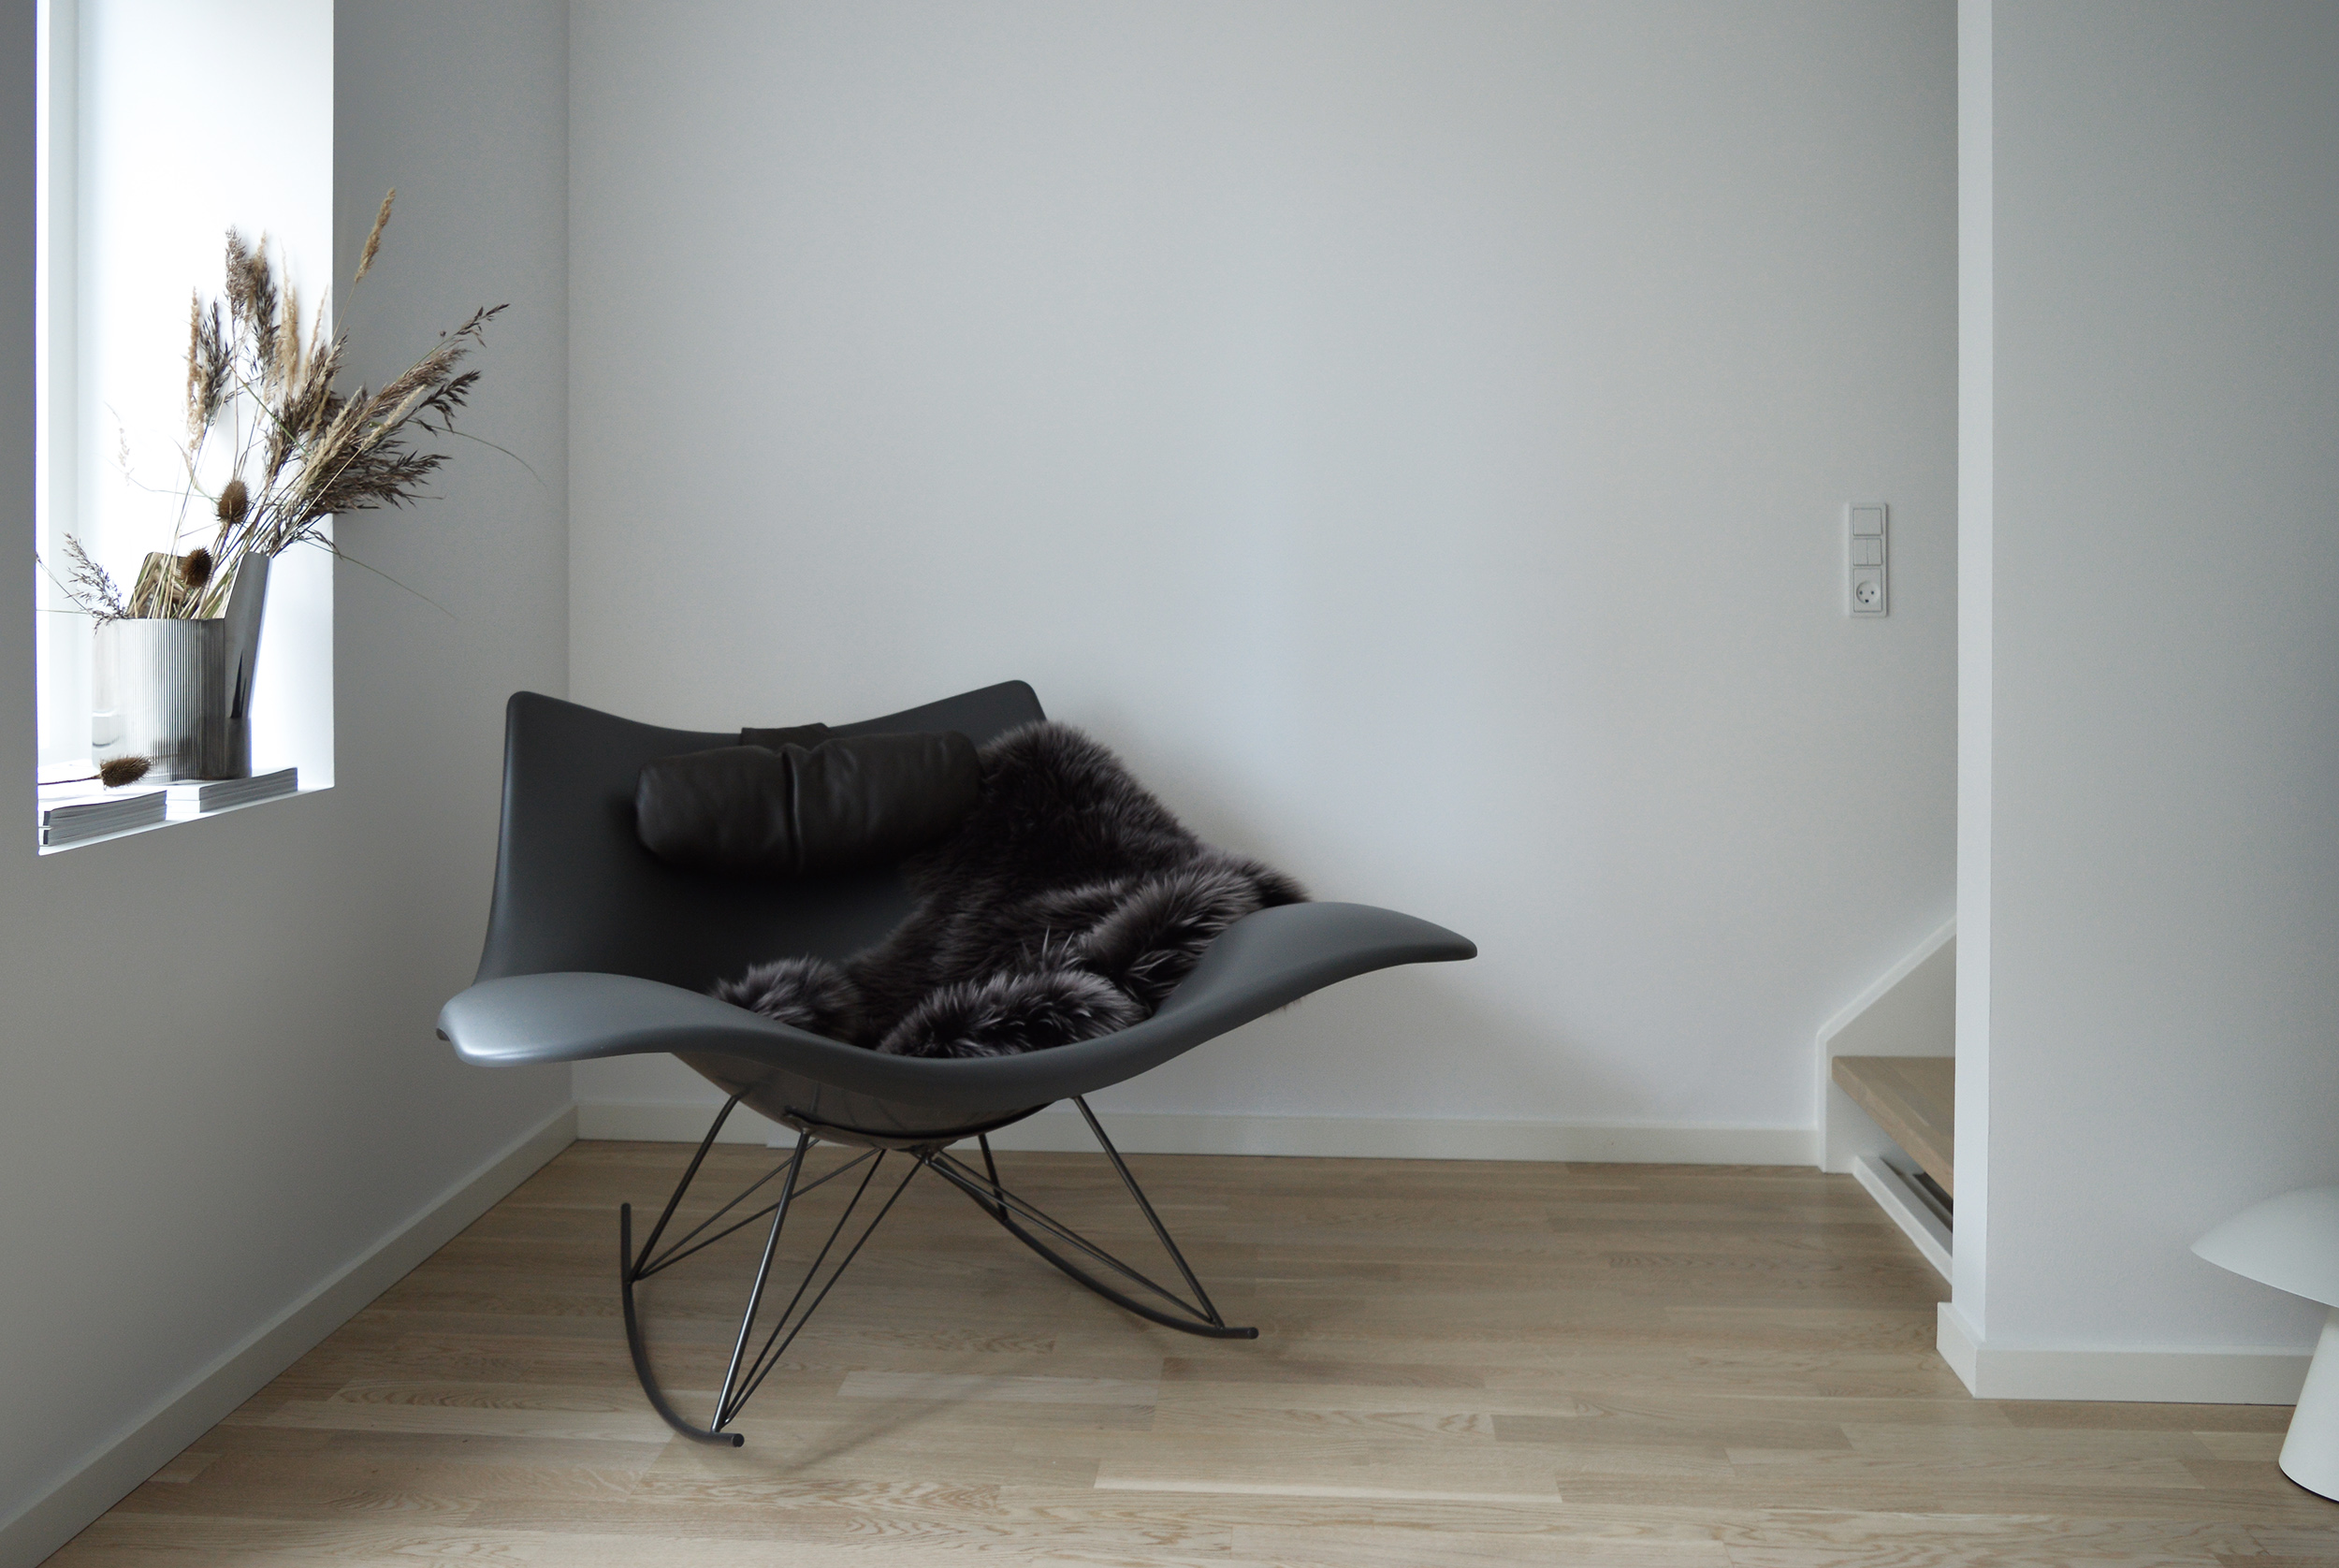 The Stingray rocker chair - Designed by Thomas Pedersen for Fredericia